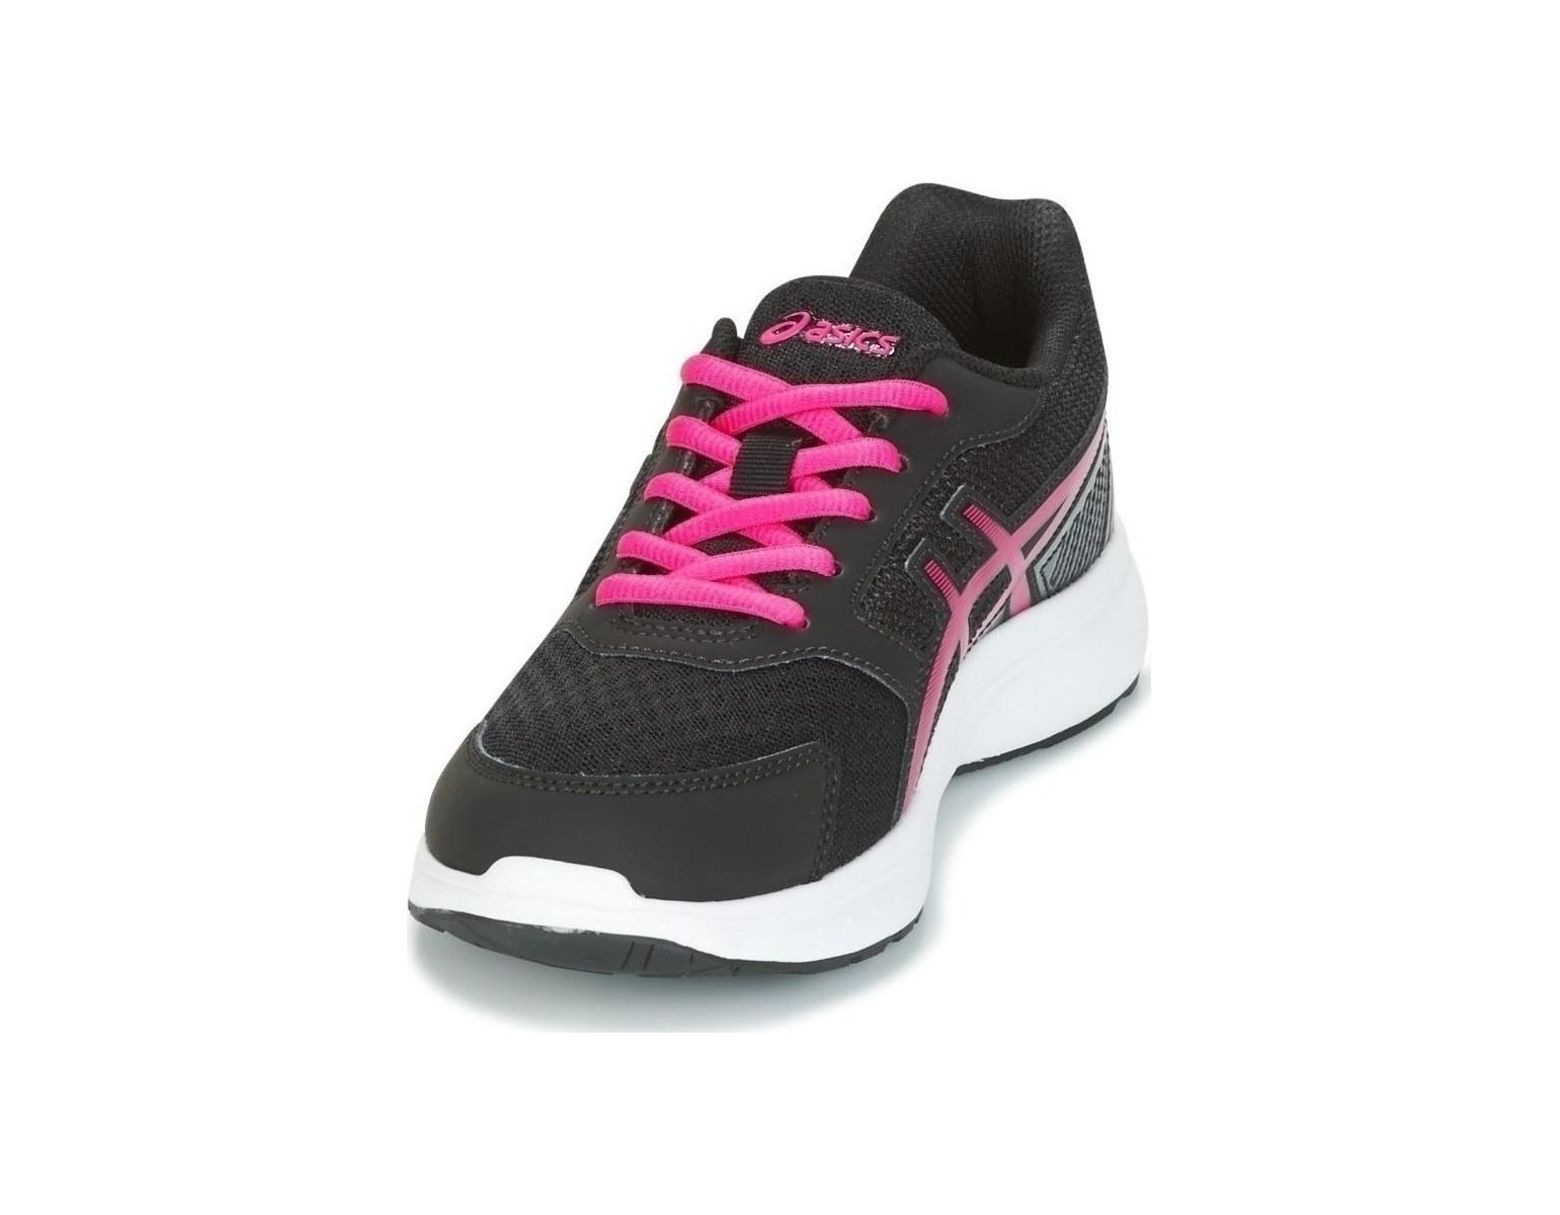 97e3c3e052 Asics Gel Stormer 2 Gs C811n 9019 Women's Running Trainers In Black in  Black - Save 41% - Lyst